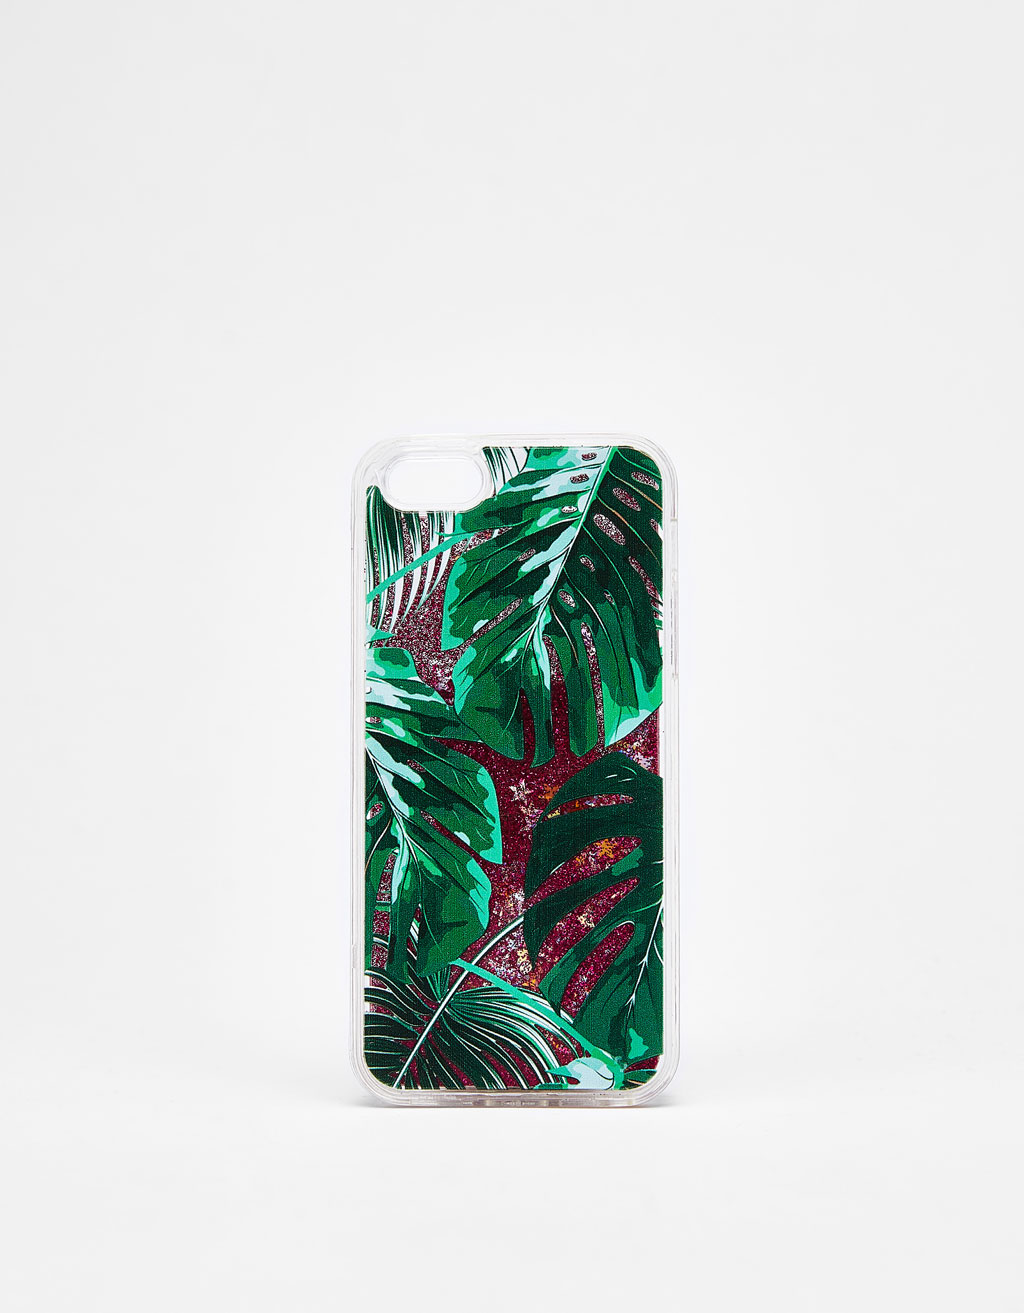 Tropical maska iPhone 5/5s